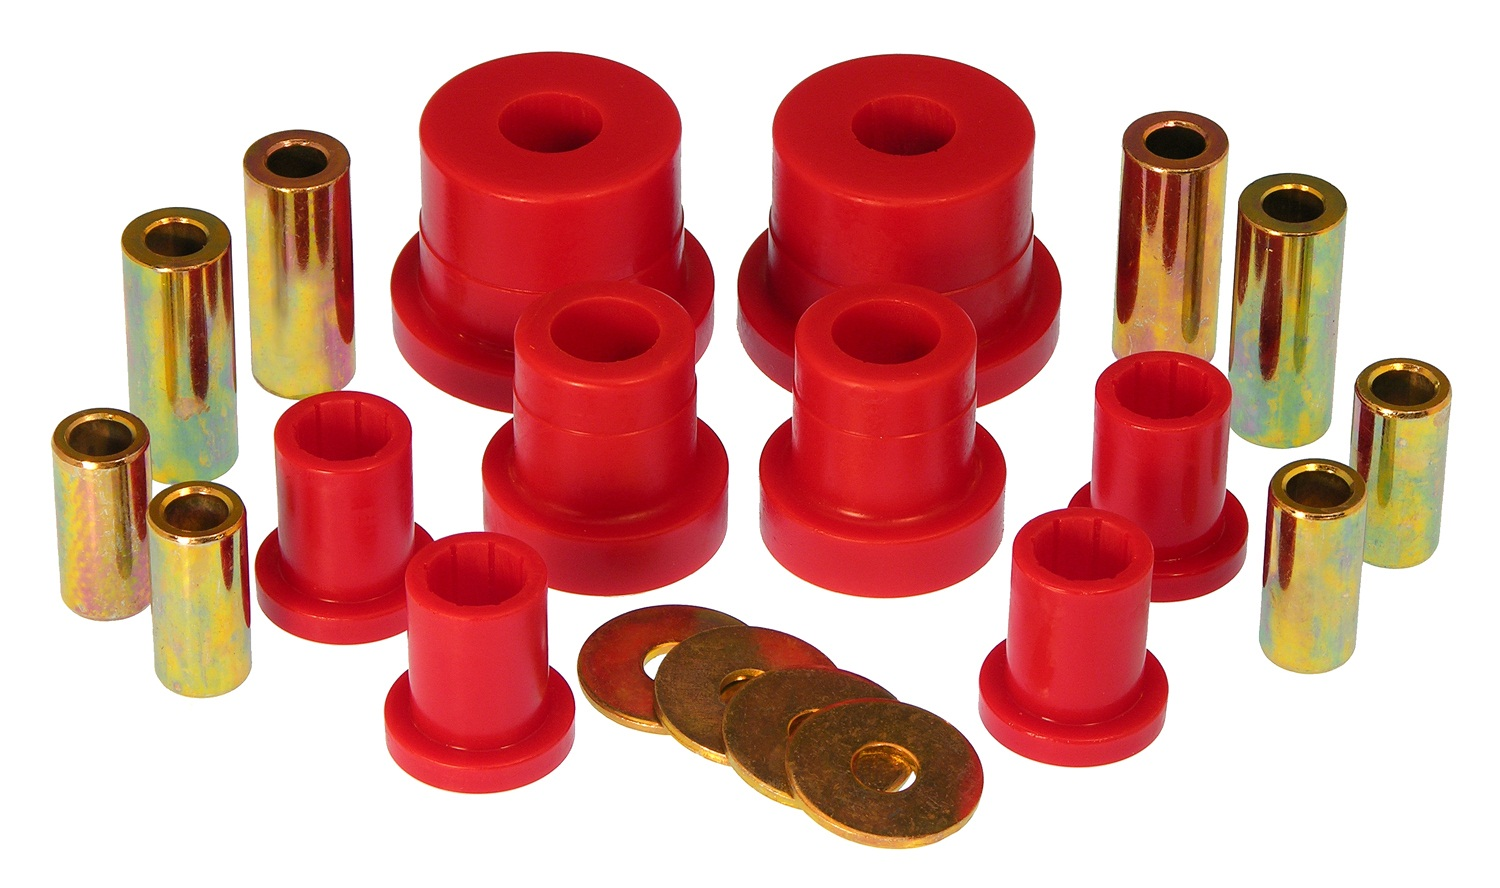 Prothane 7-242 Control Arm Bushing Kit